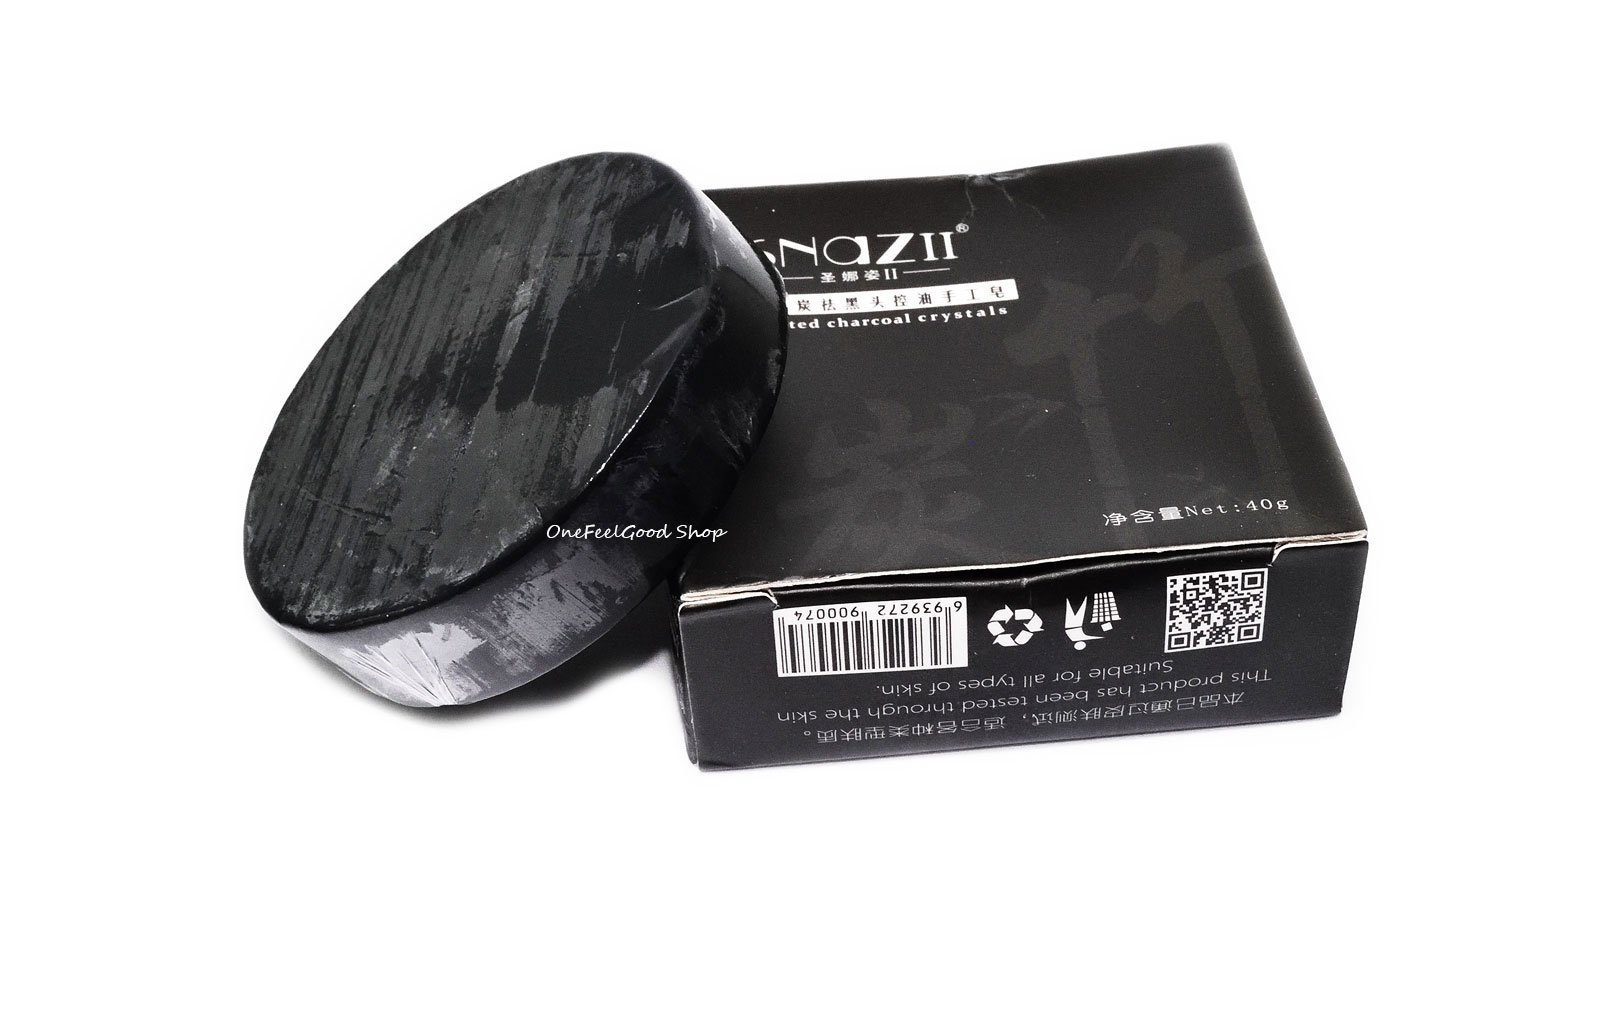 3X Snazii soap Bamboo charcoal handmade soap Treatment skin care natural Skin whitening soap blackhead remover acne treatment oil control net wt.40g (Pack of 3 Bar) by onefeelgood shop